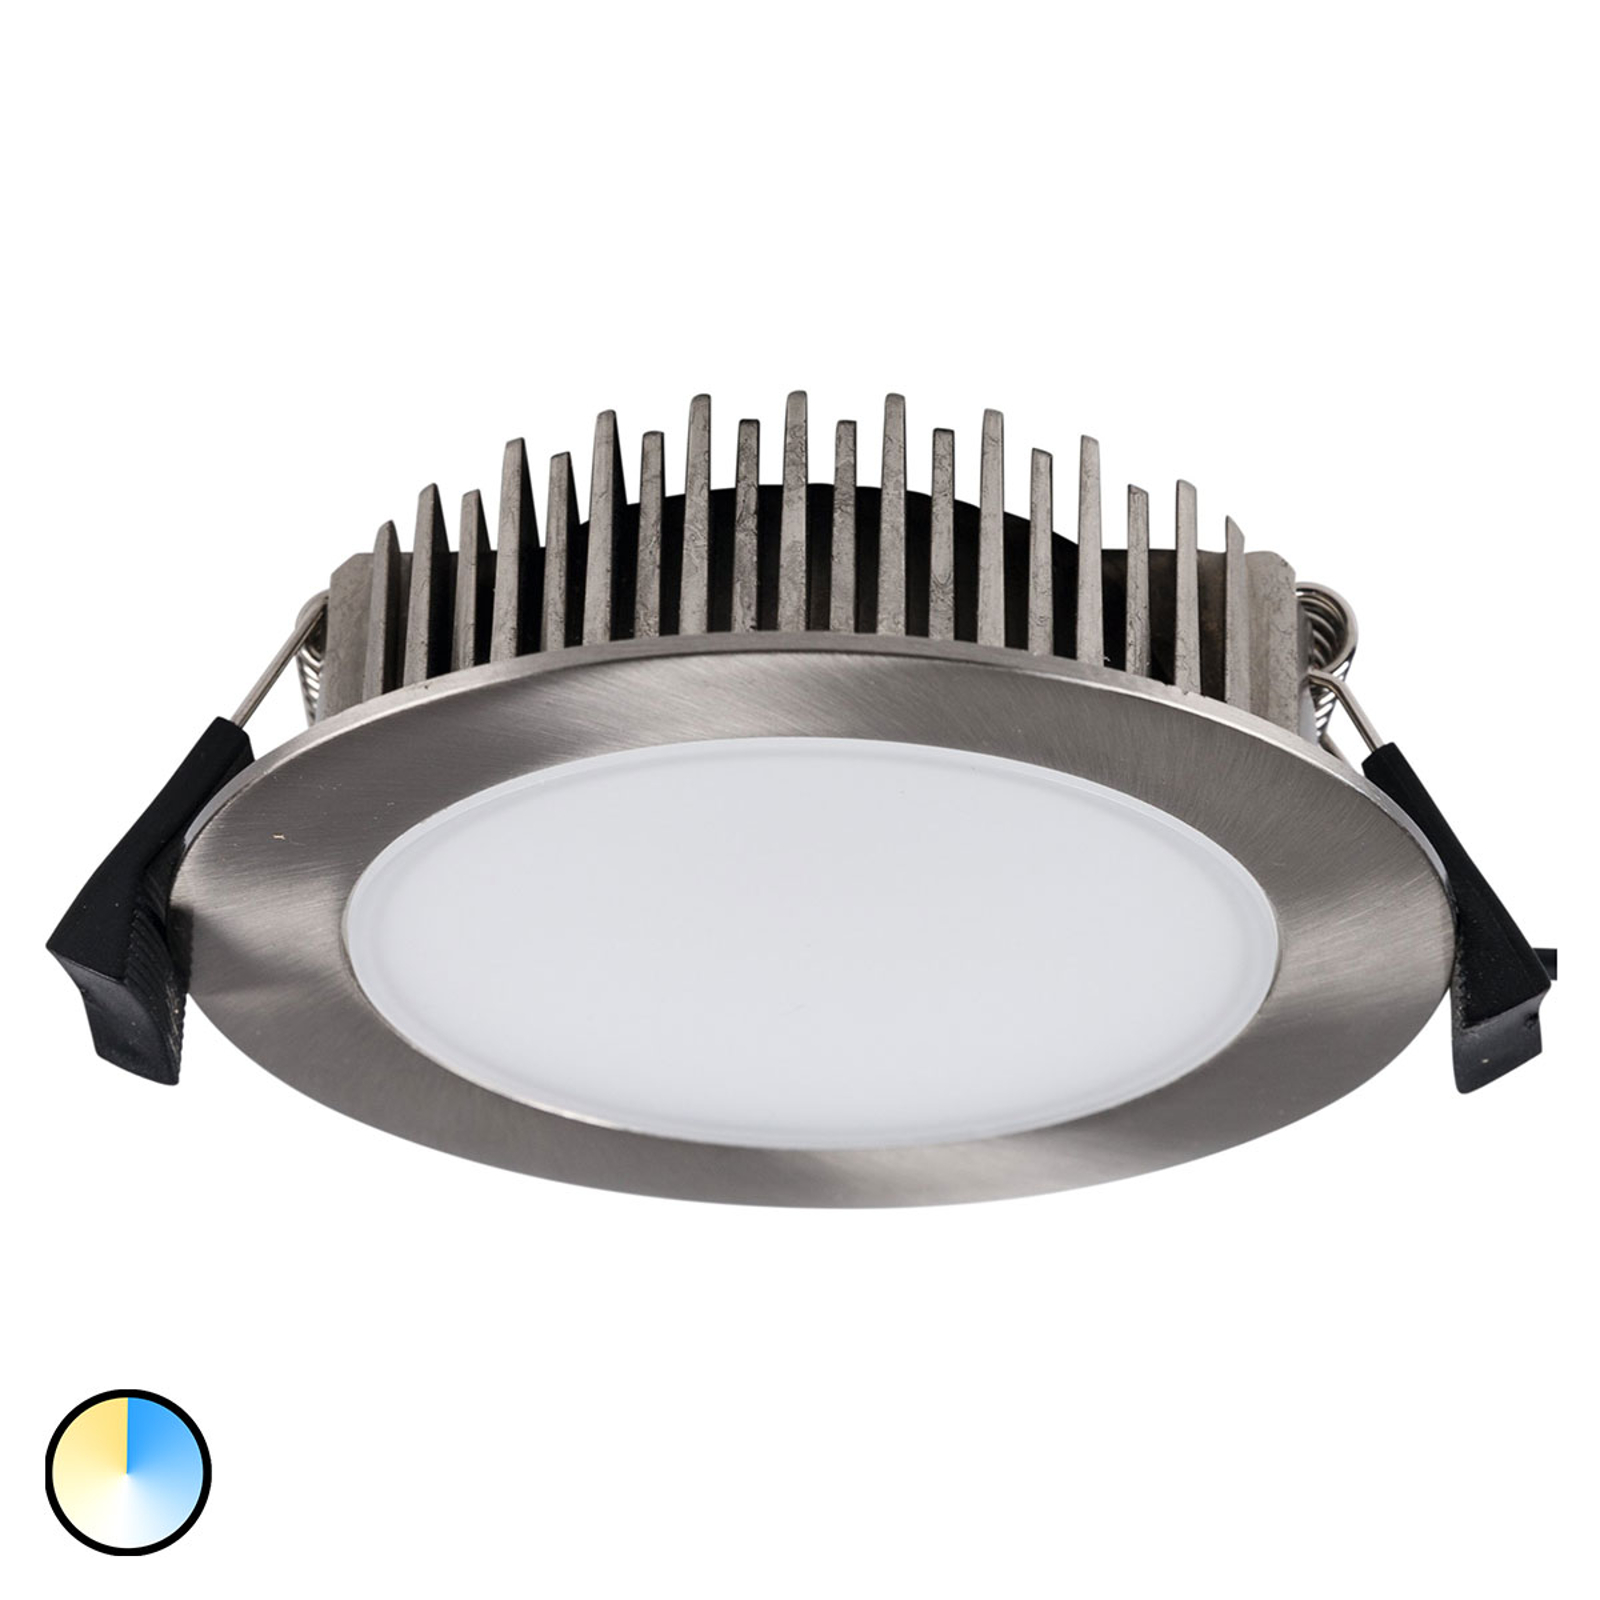 Spot encastré LED Lino 3 000 K-5 700 K 13 W nickel